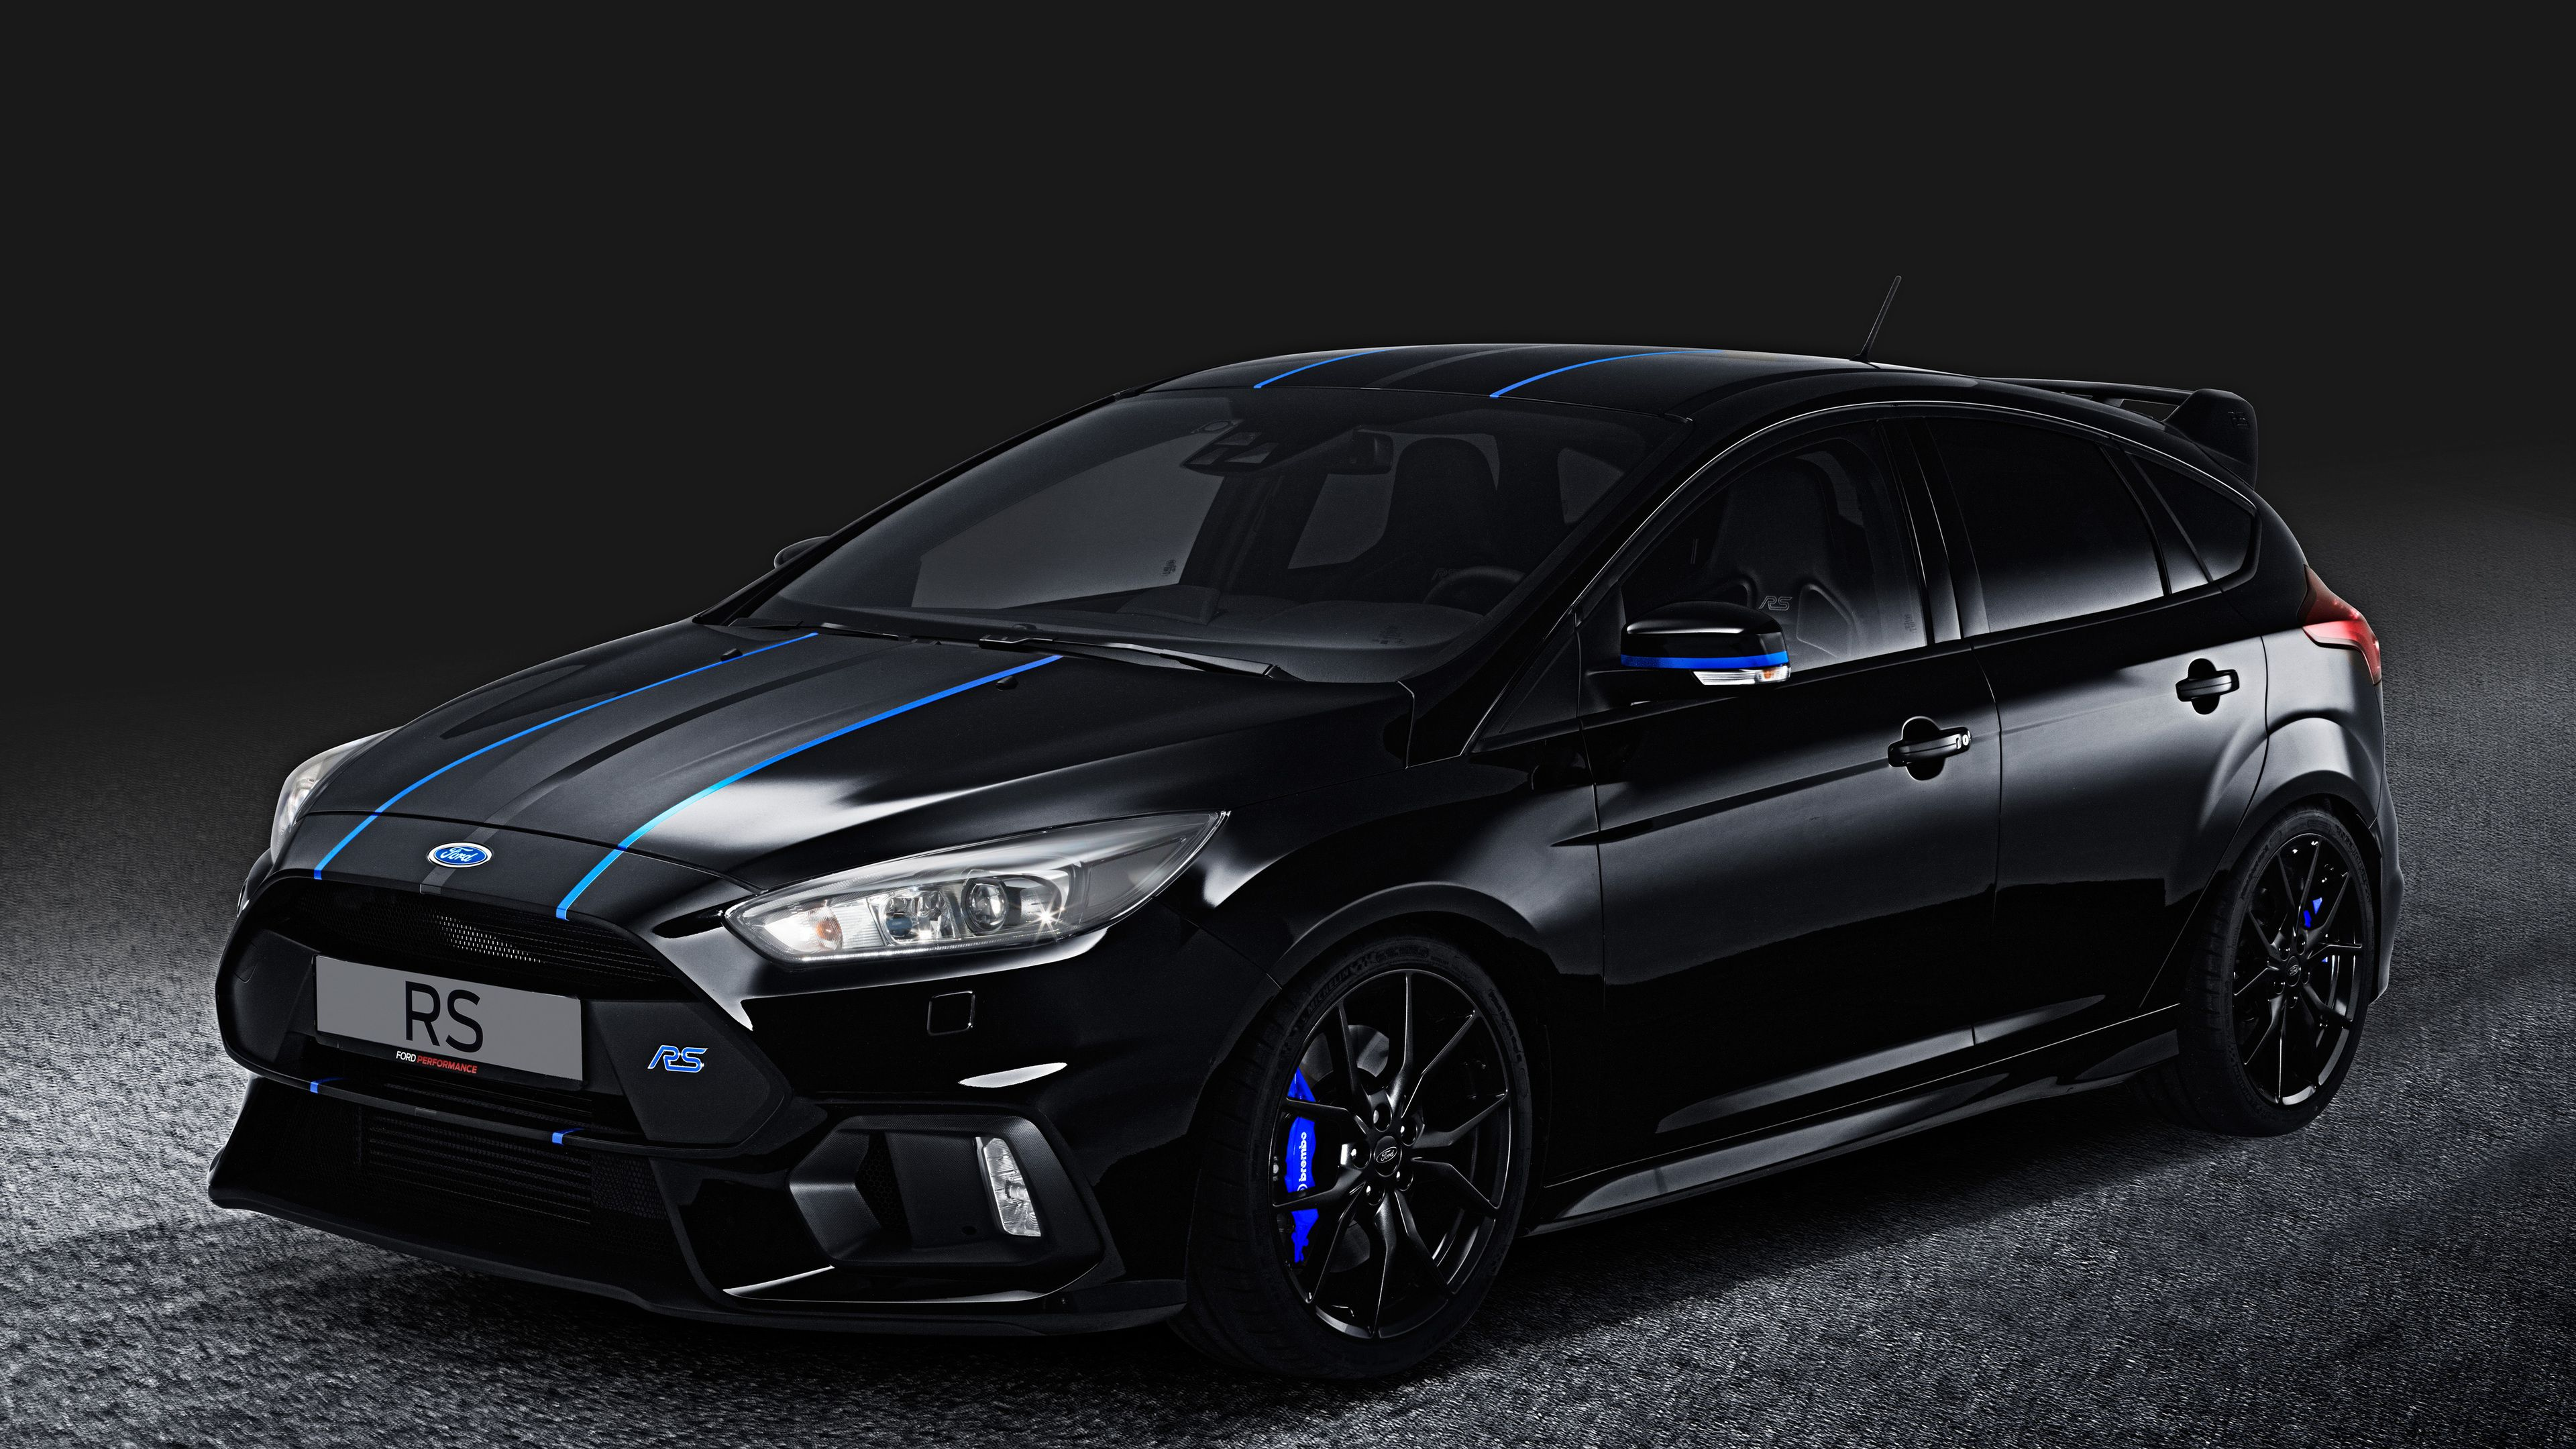 Wallpaper 4k Ford Focus Rs Performance Parts 4k 2017 Cars